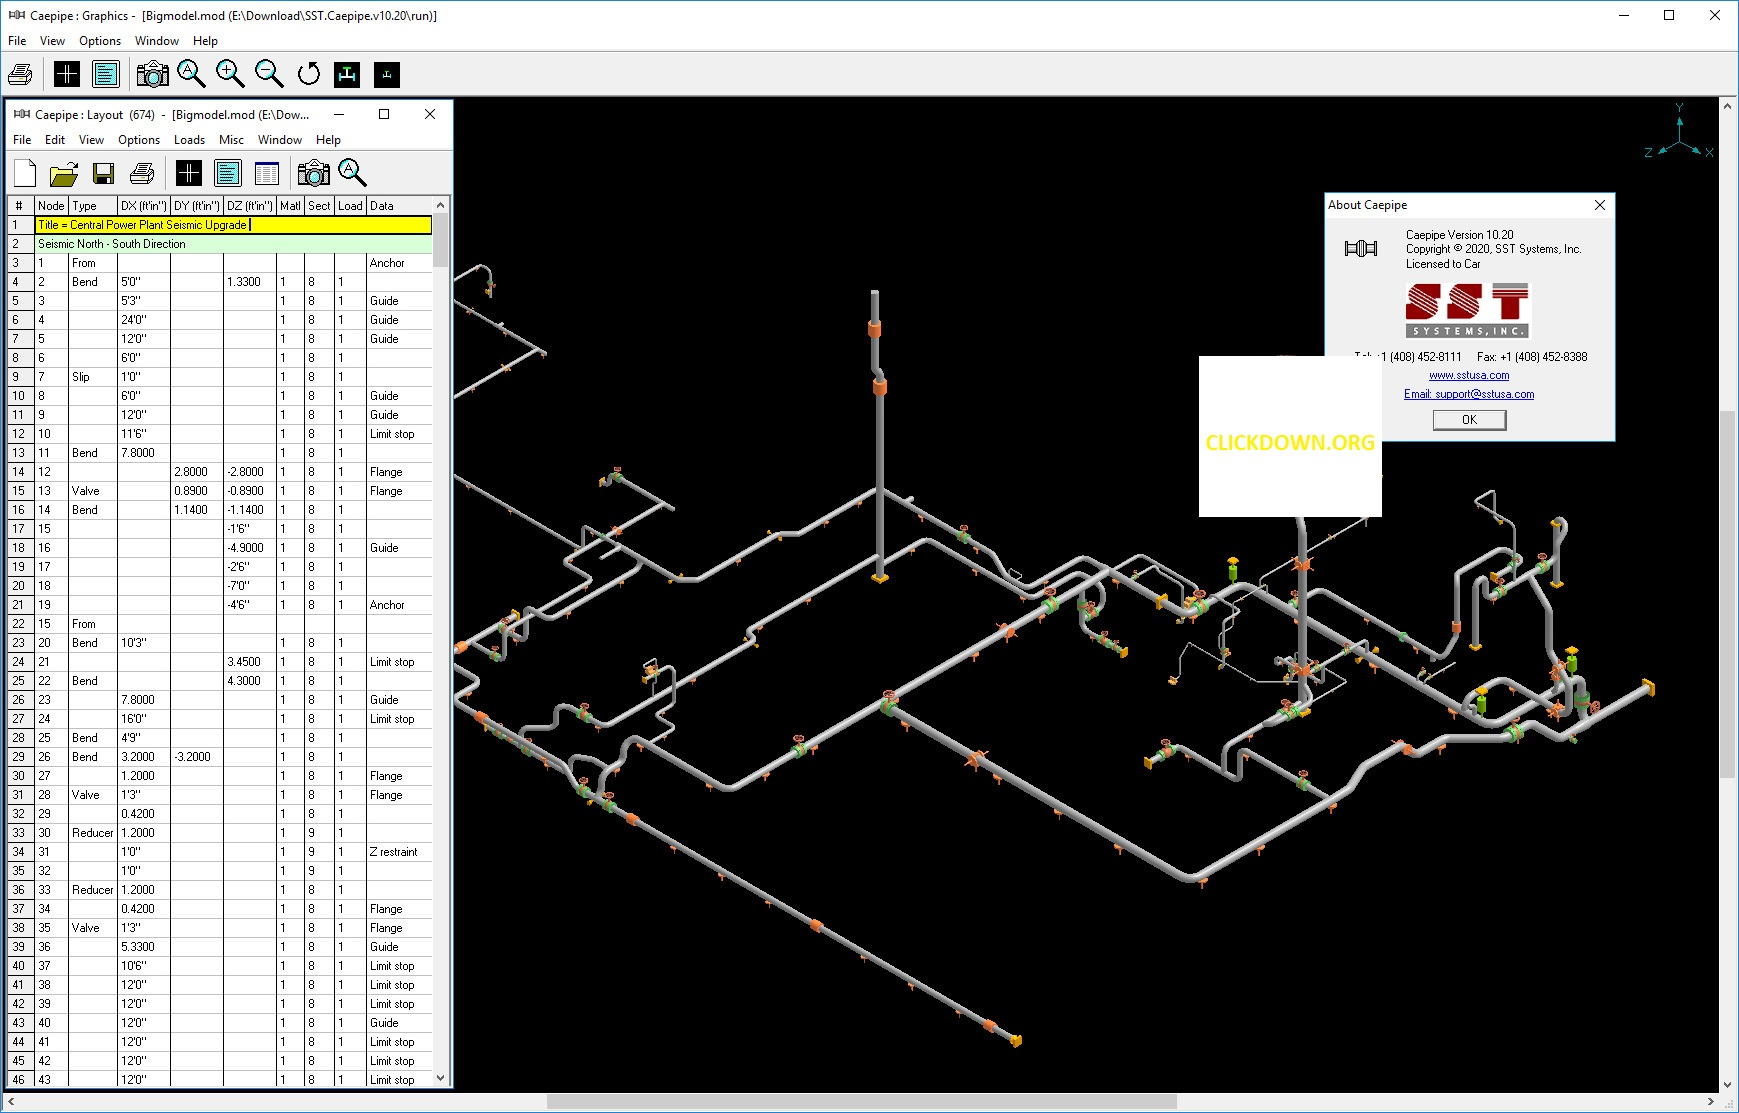 Working with SST Systems CAEPIPE 10.20 full license